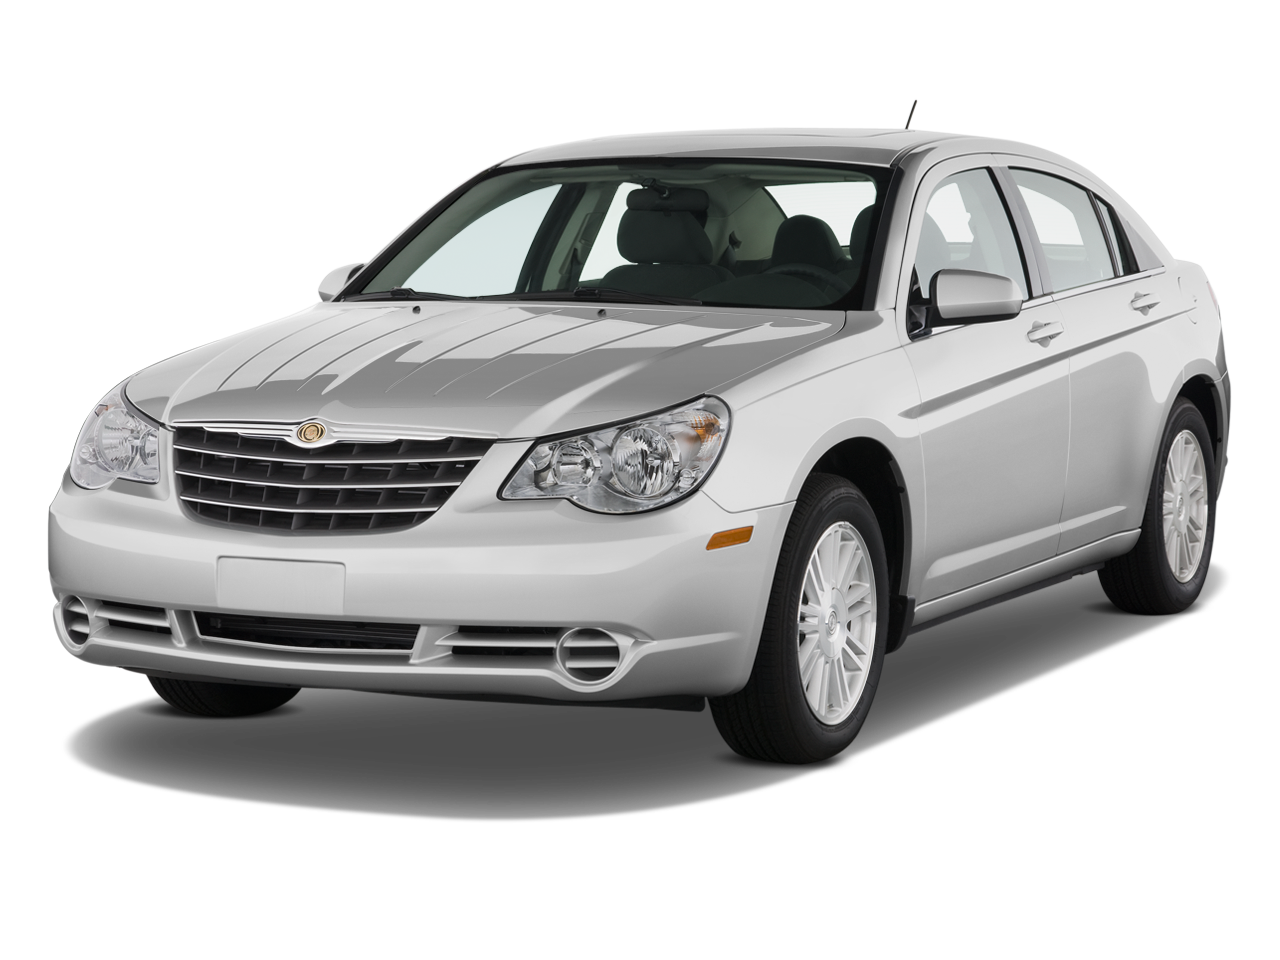 Chrysler Sebring US (01-07) (JR)